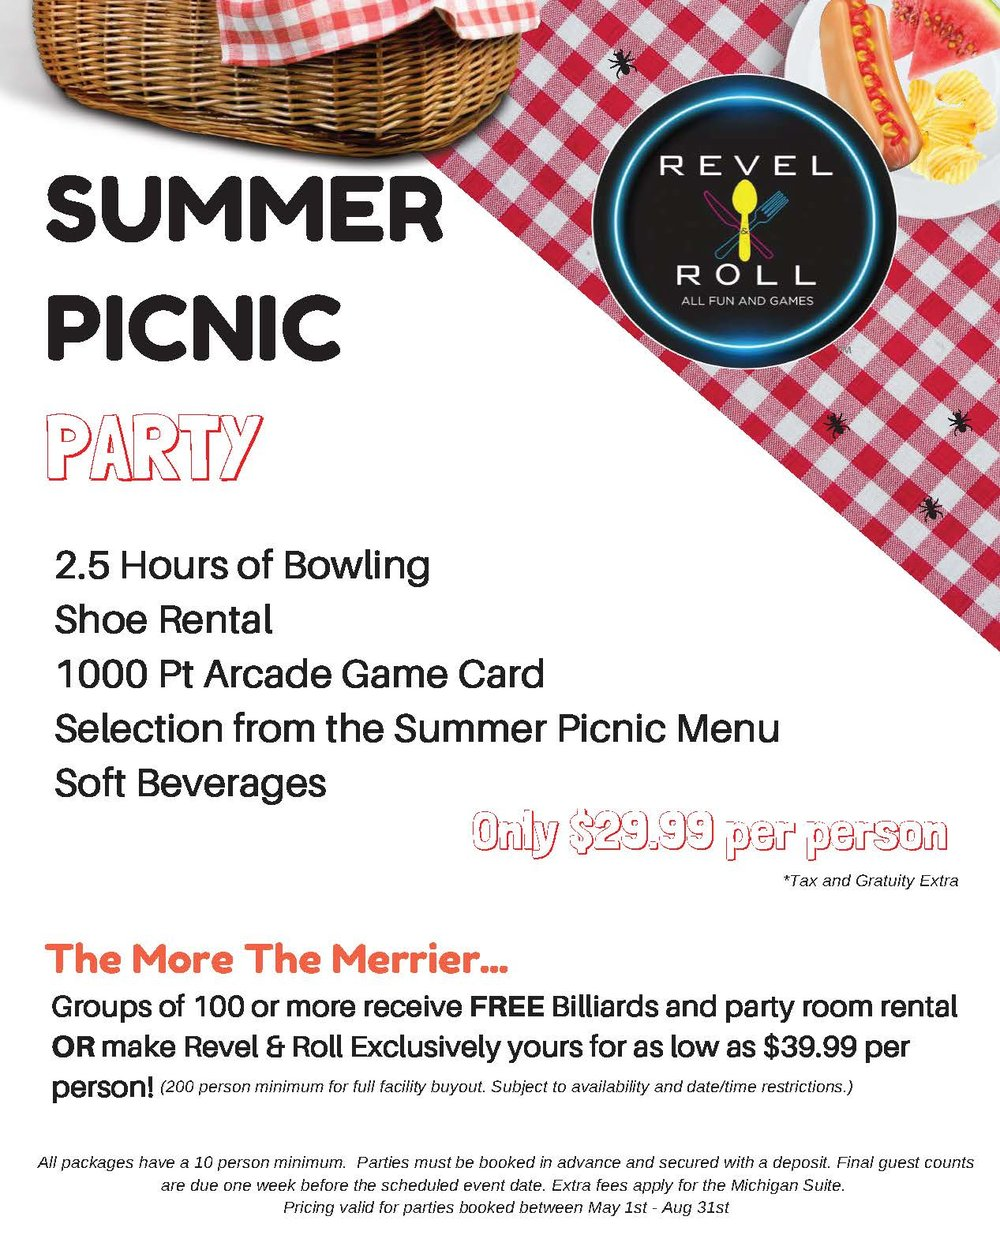 Summer Picnic Party.jpg